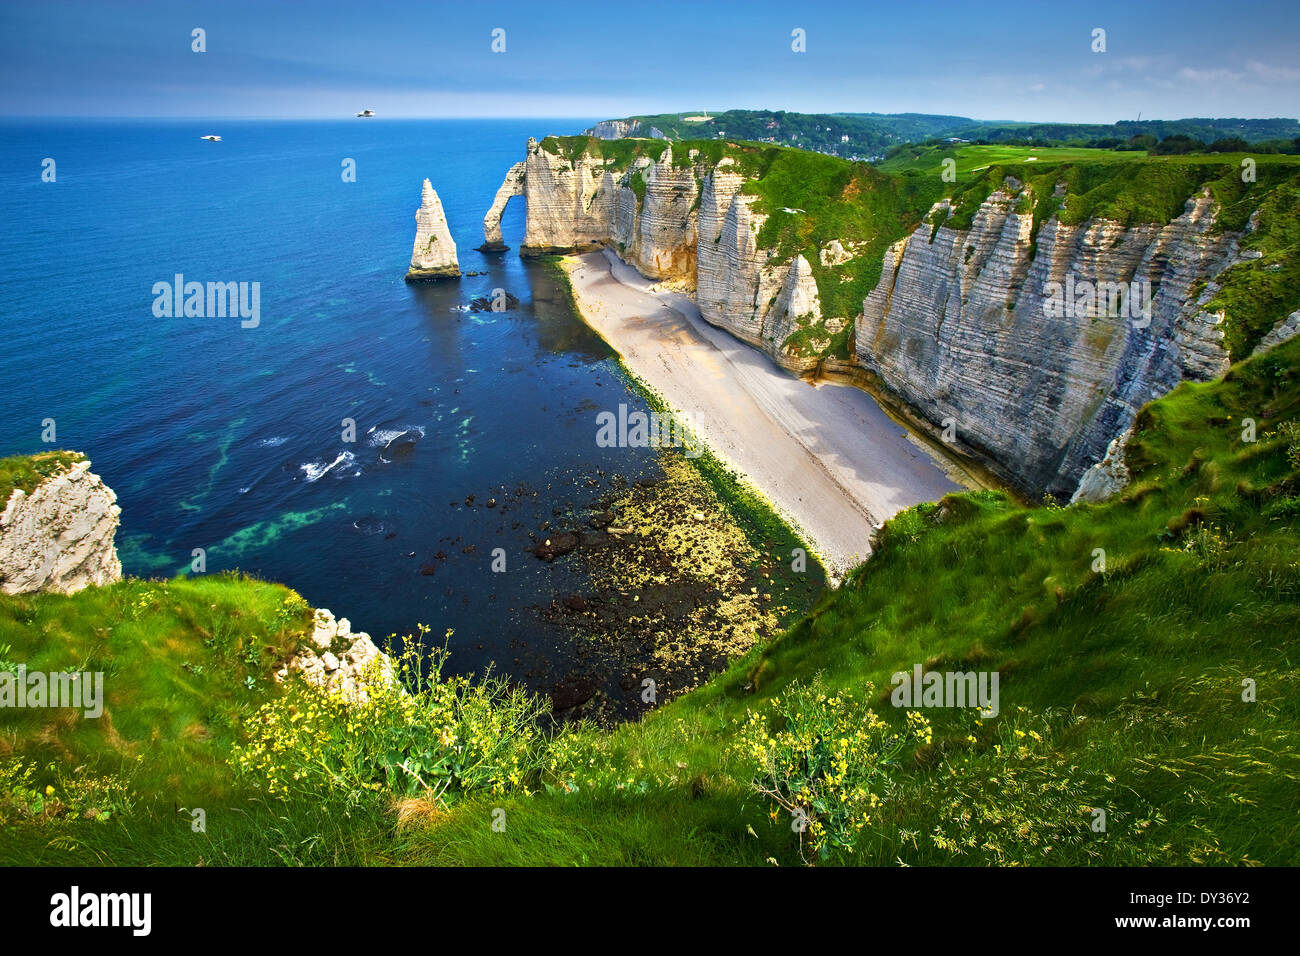 The cliffs of Etretat on the Normandy coast, France - Stock Image